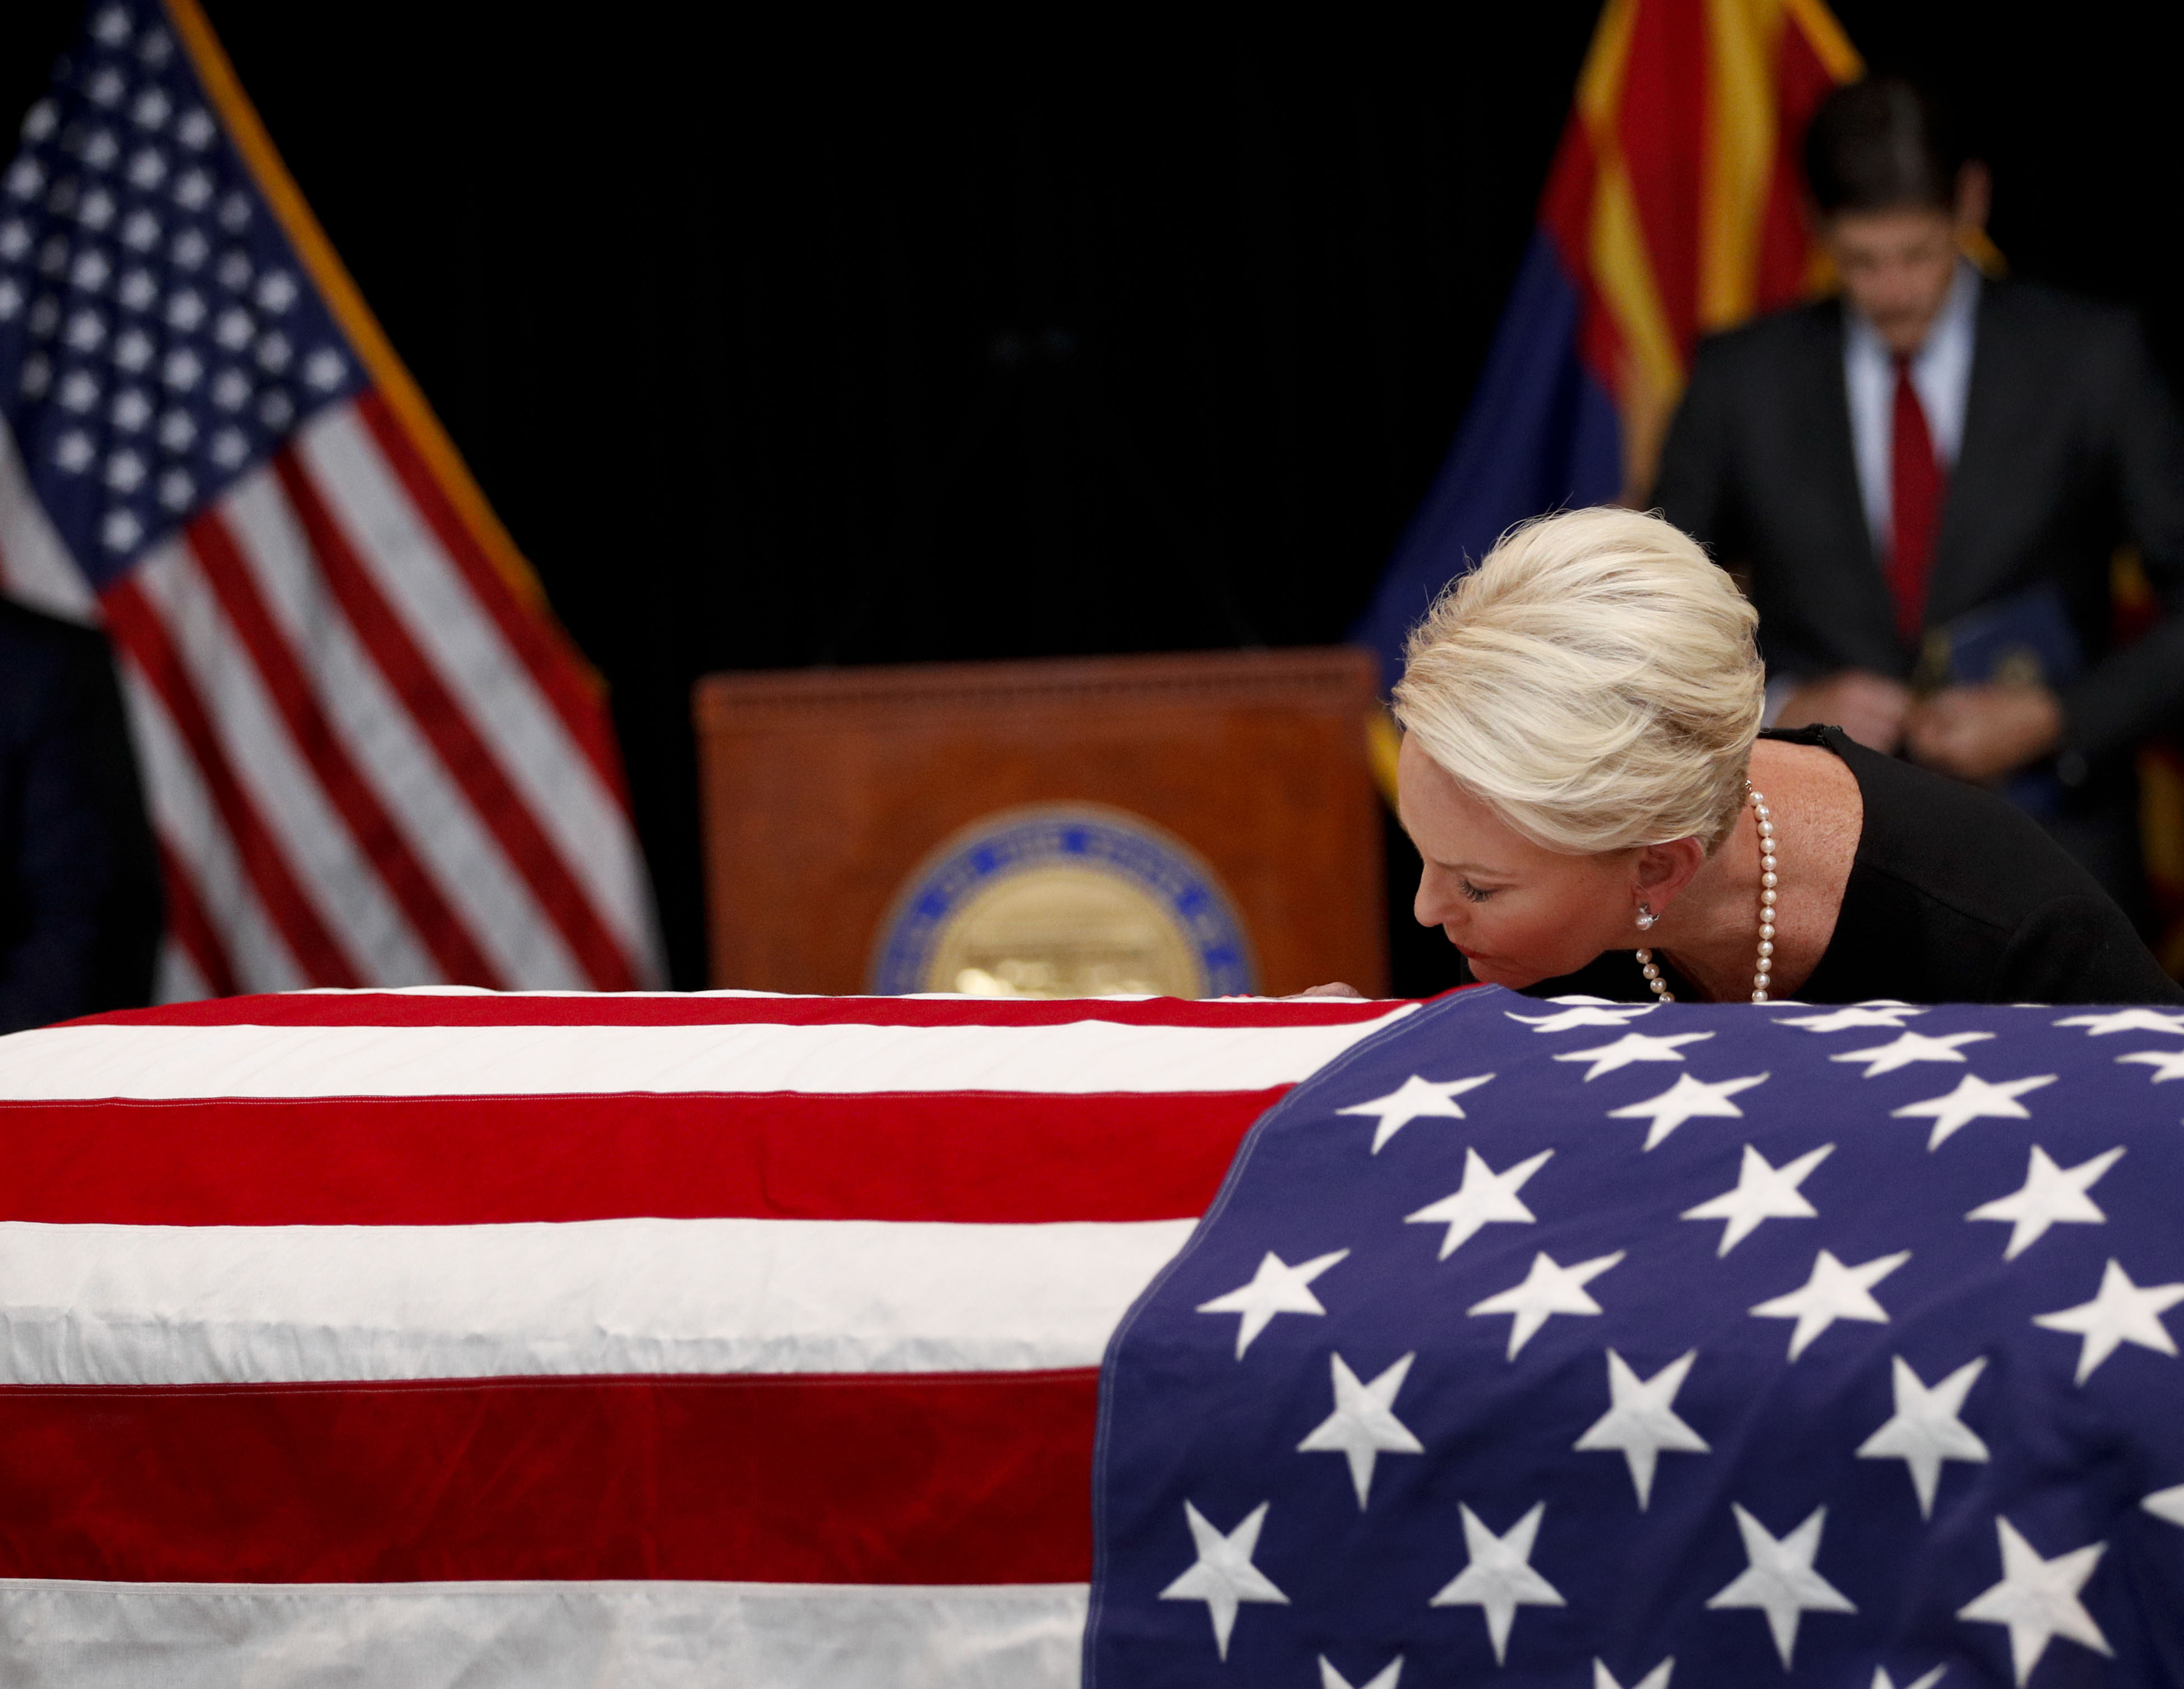 Cindy McCain, wife of Sen. John McCain, R-Ariz. touches the casket during a memorial service at the Arizona Capitol on August 29, 2018 in Phoenix, Arizona. Sen. McCain, a decorated war hero, died August 25 at the age of 81 after a long battle with Glioblastoma, a form of brain cancer.